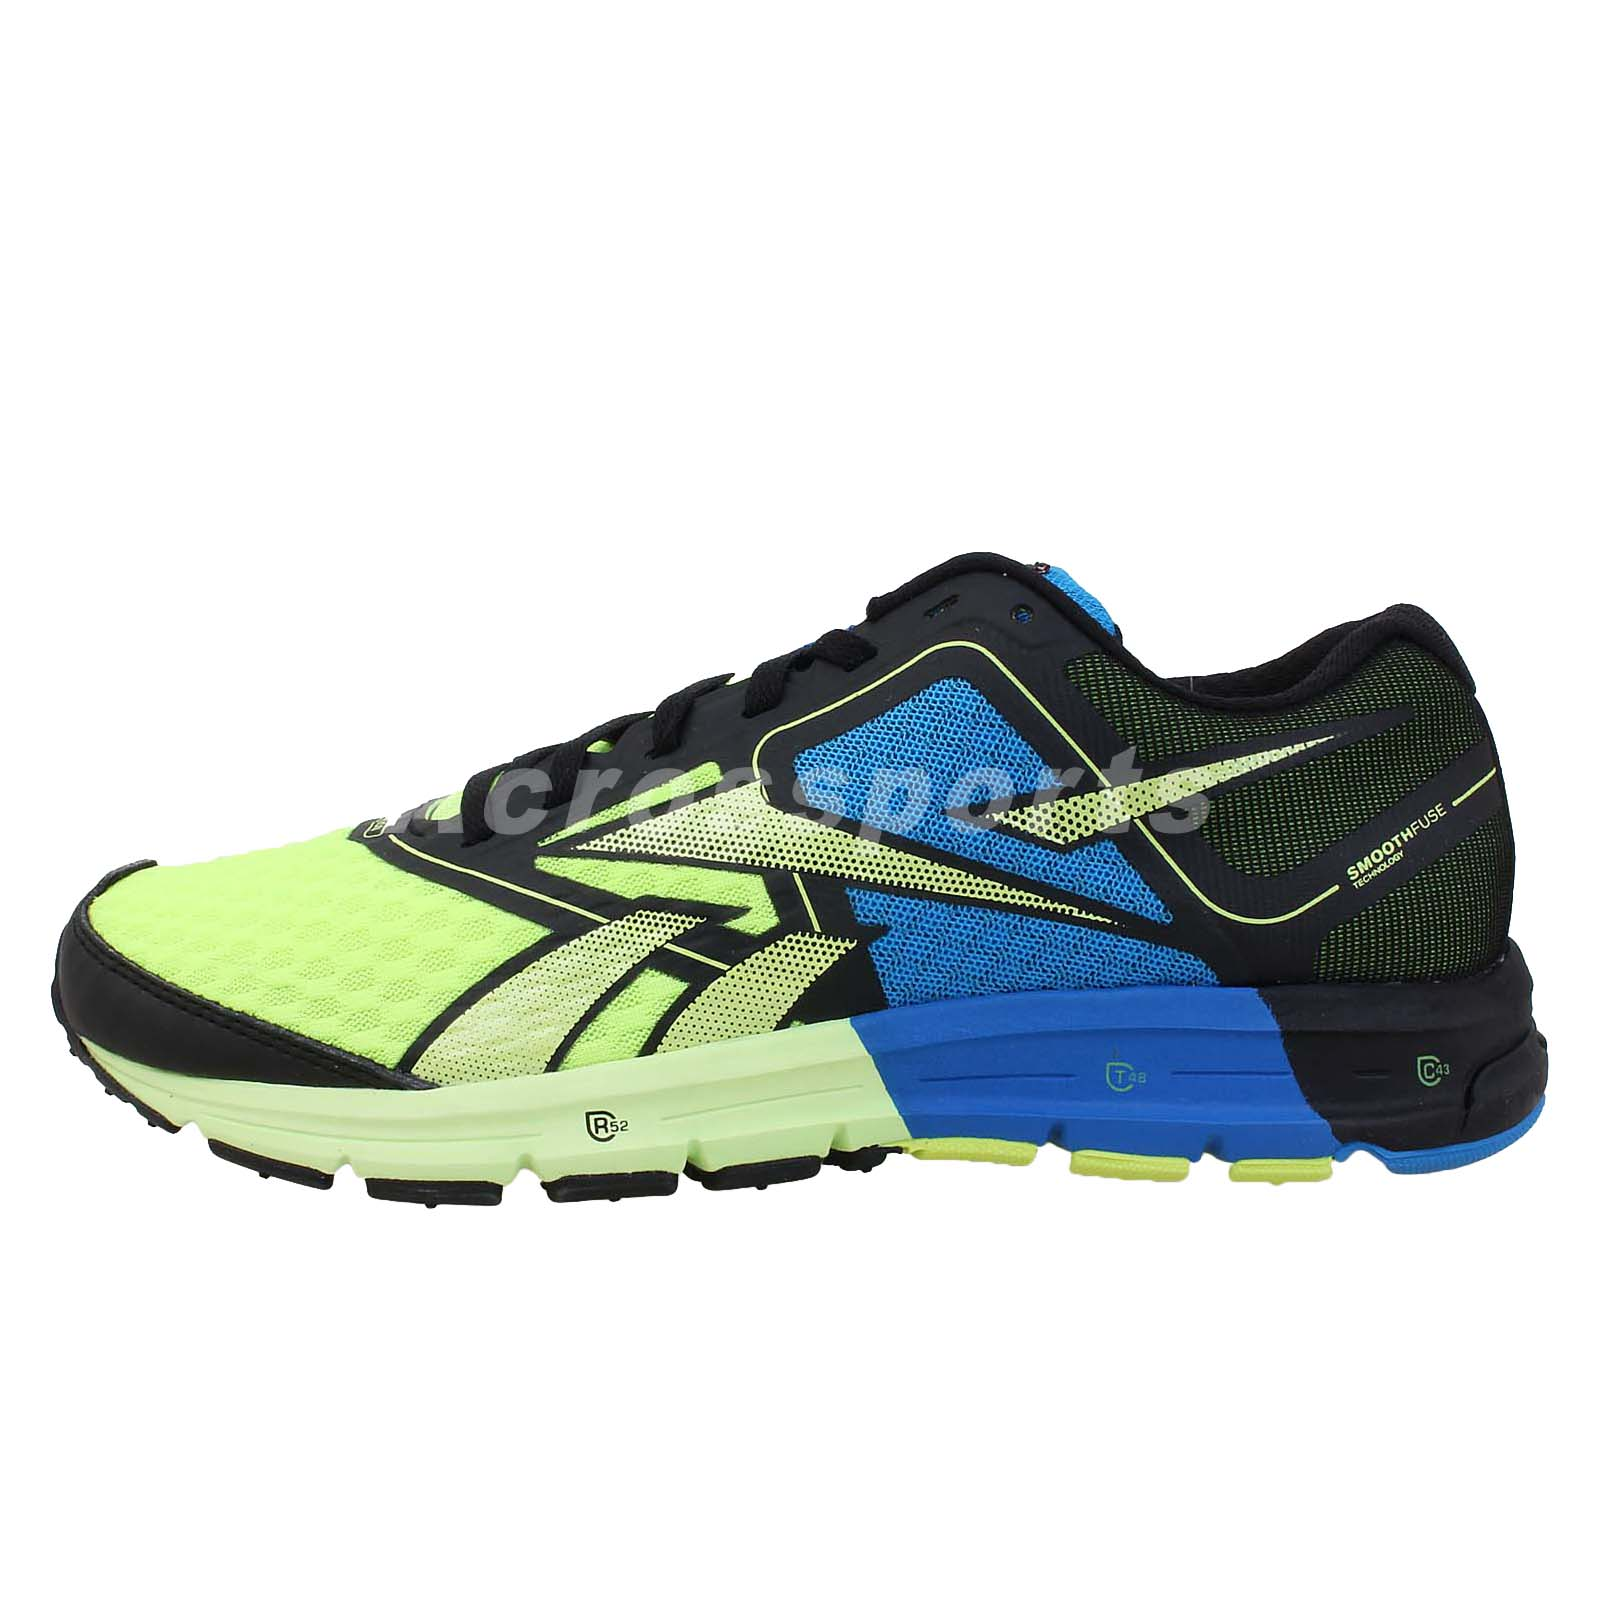 reebok one cushion 2013 new running shoes smoothfuse tech